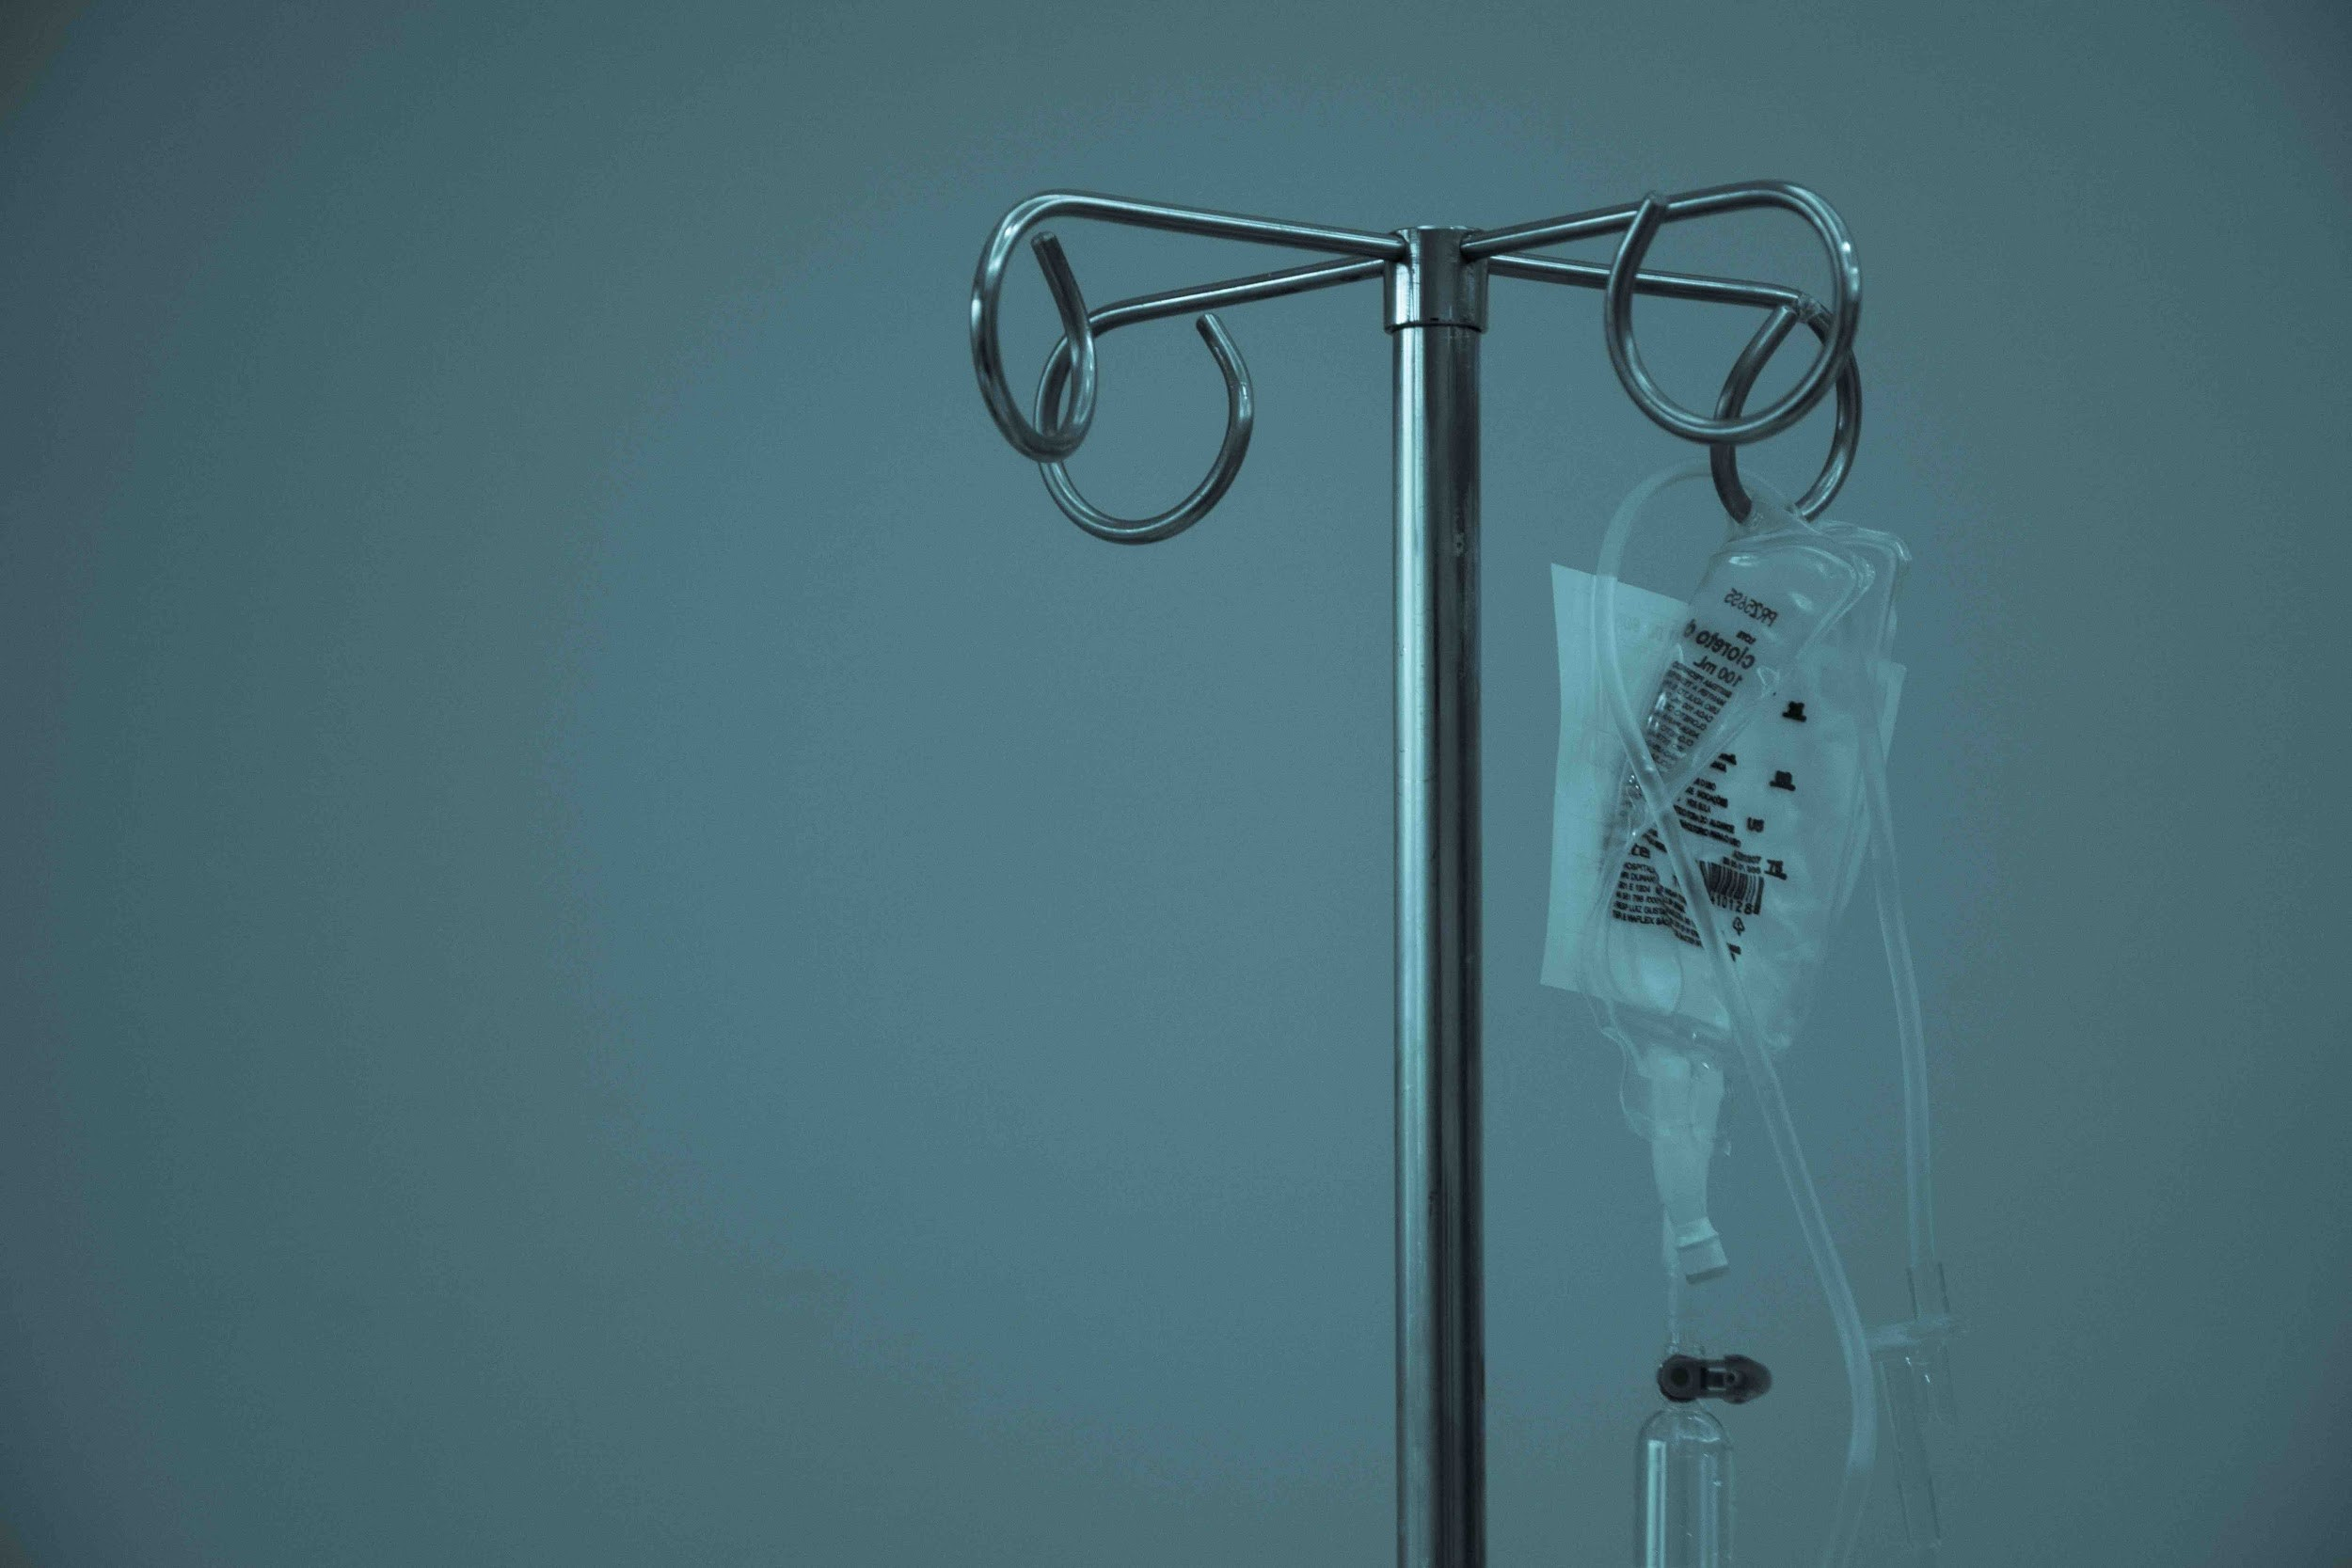 I Think I Was Harmed by Medical Malpractice: What Should I Do?